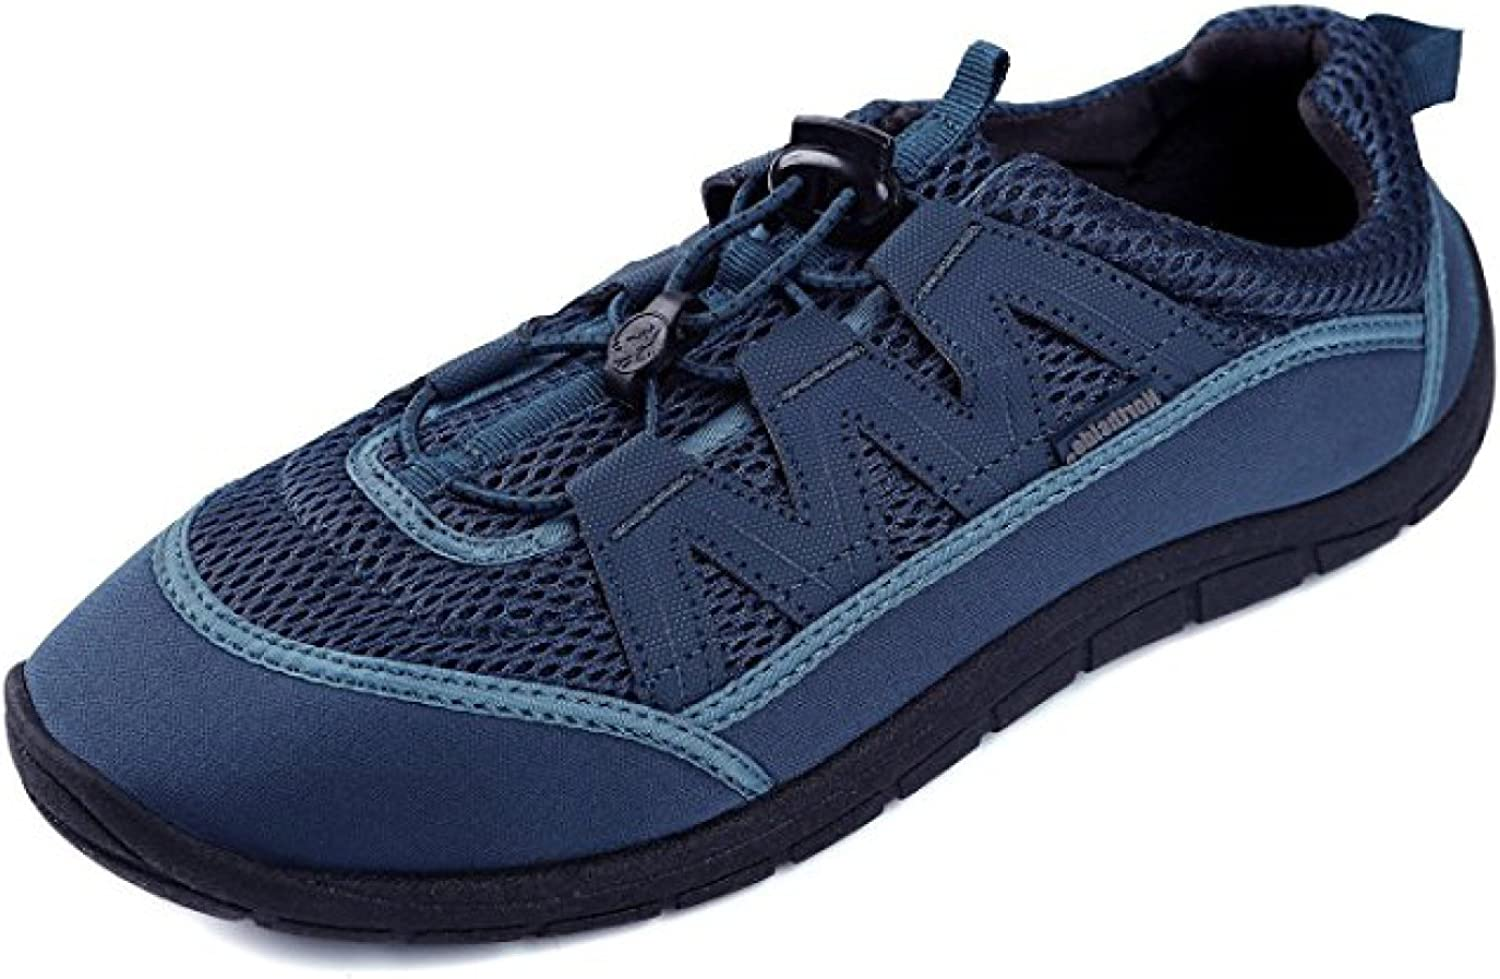 Northside Men's Brille II Summer Water shoes, Navy bluee, 13 D(M) US; with a Waterproof Wet Dry Bag